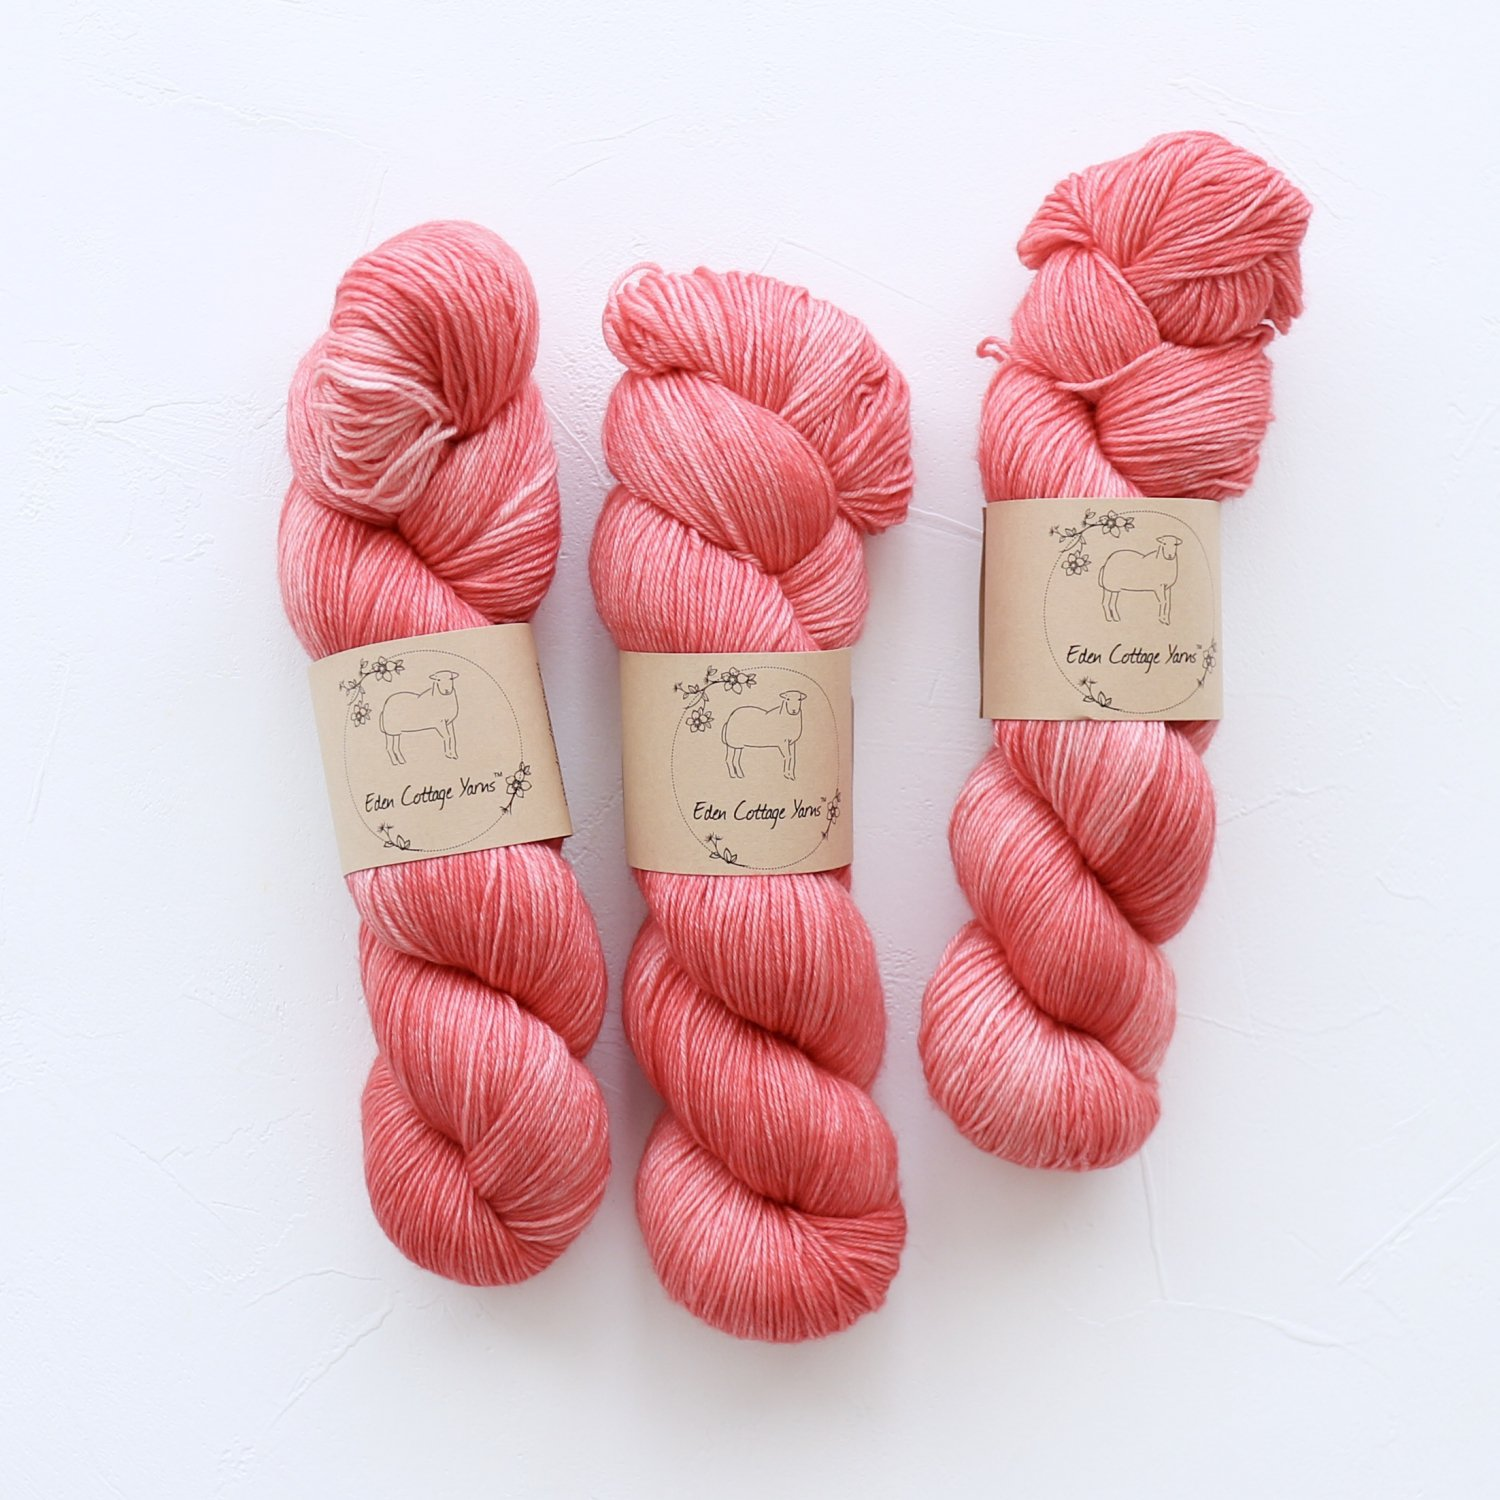 【Eden Cottage Yarns】<br>Pendle 4ply<br>Vintage Ribbon